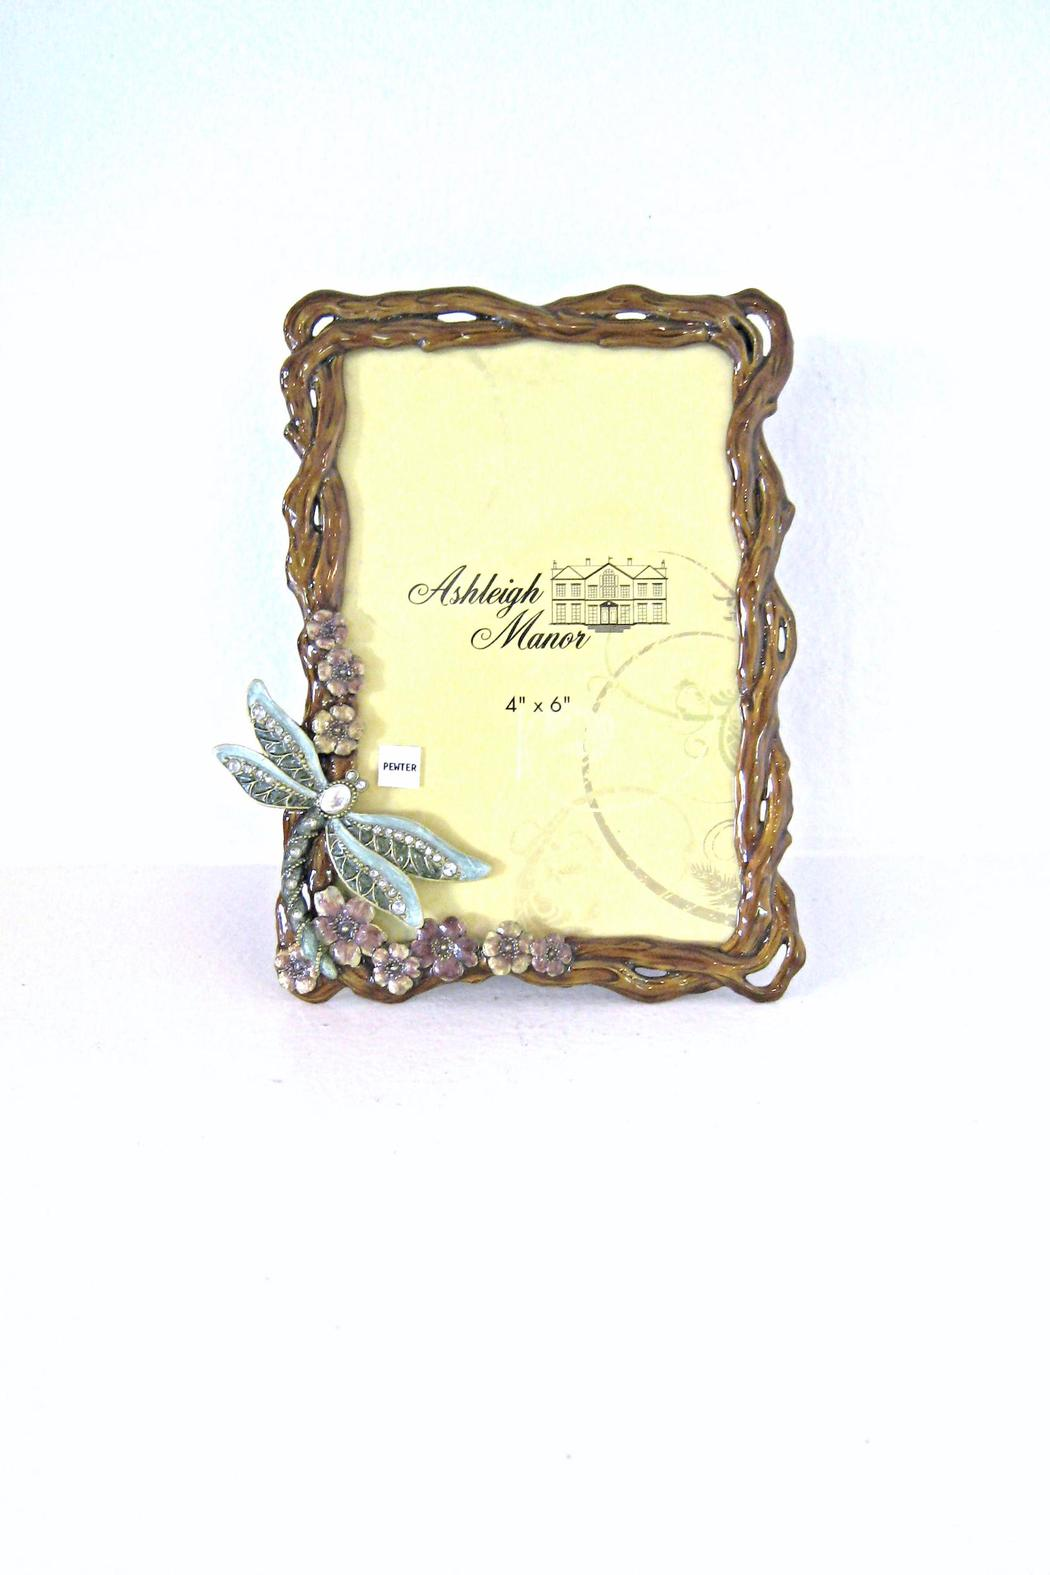 Ashleigh Manor Dragonfly Frame from New Jersey by Deseos — Shoptiques